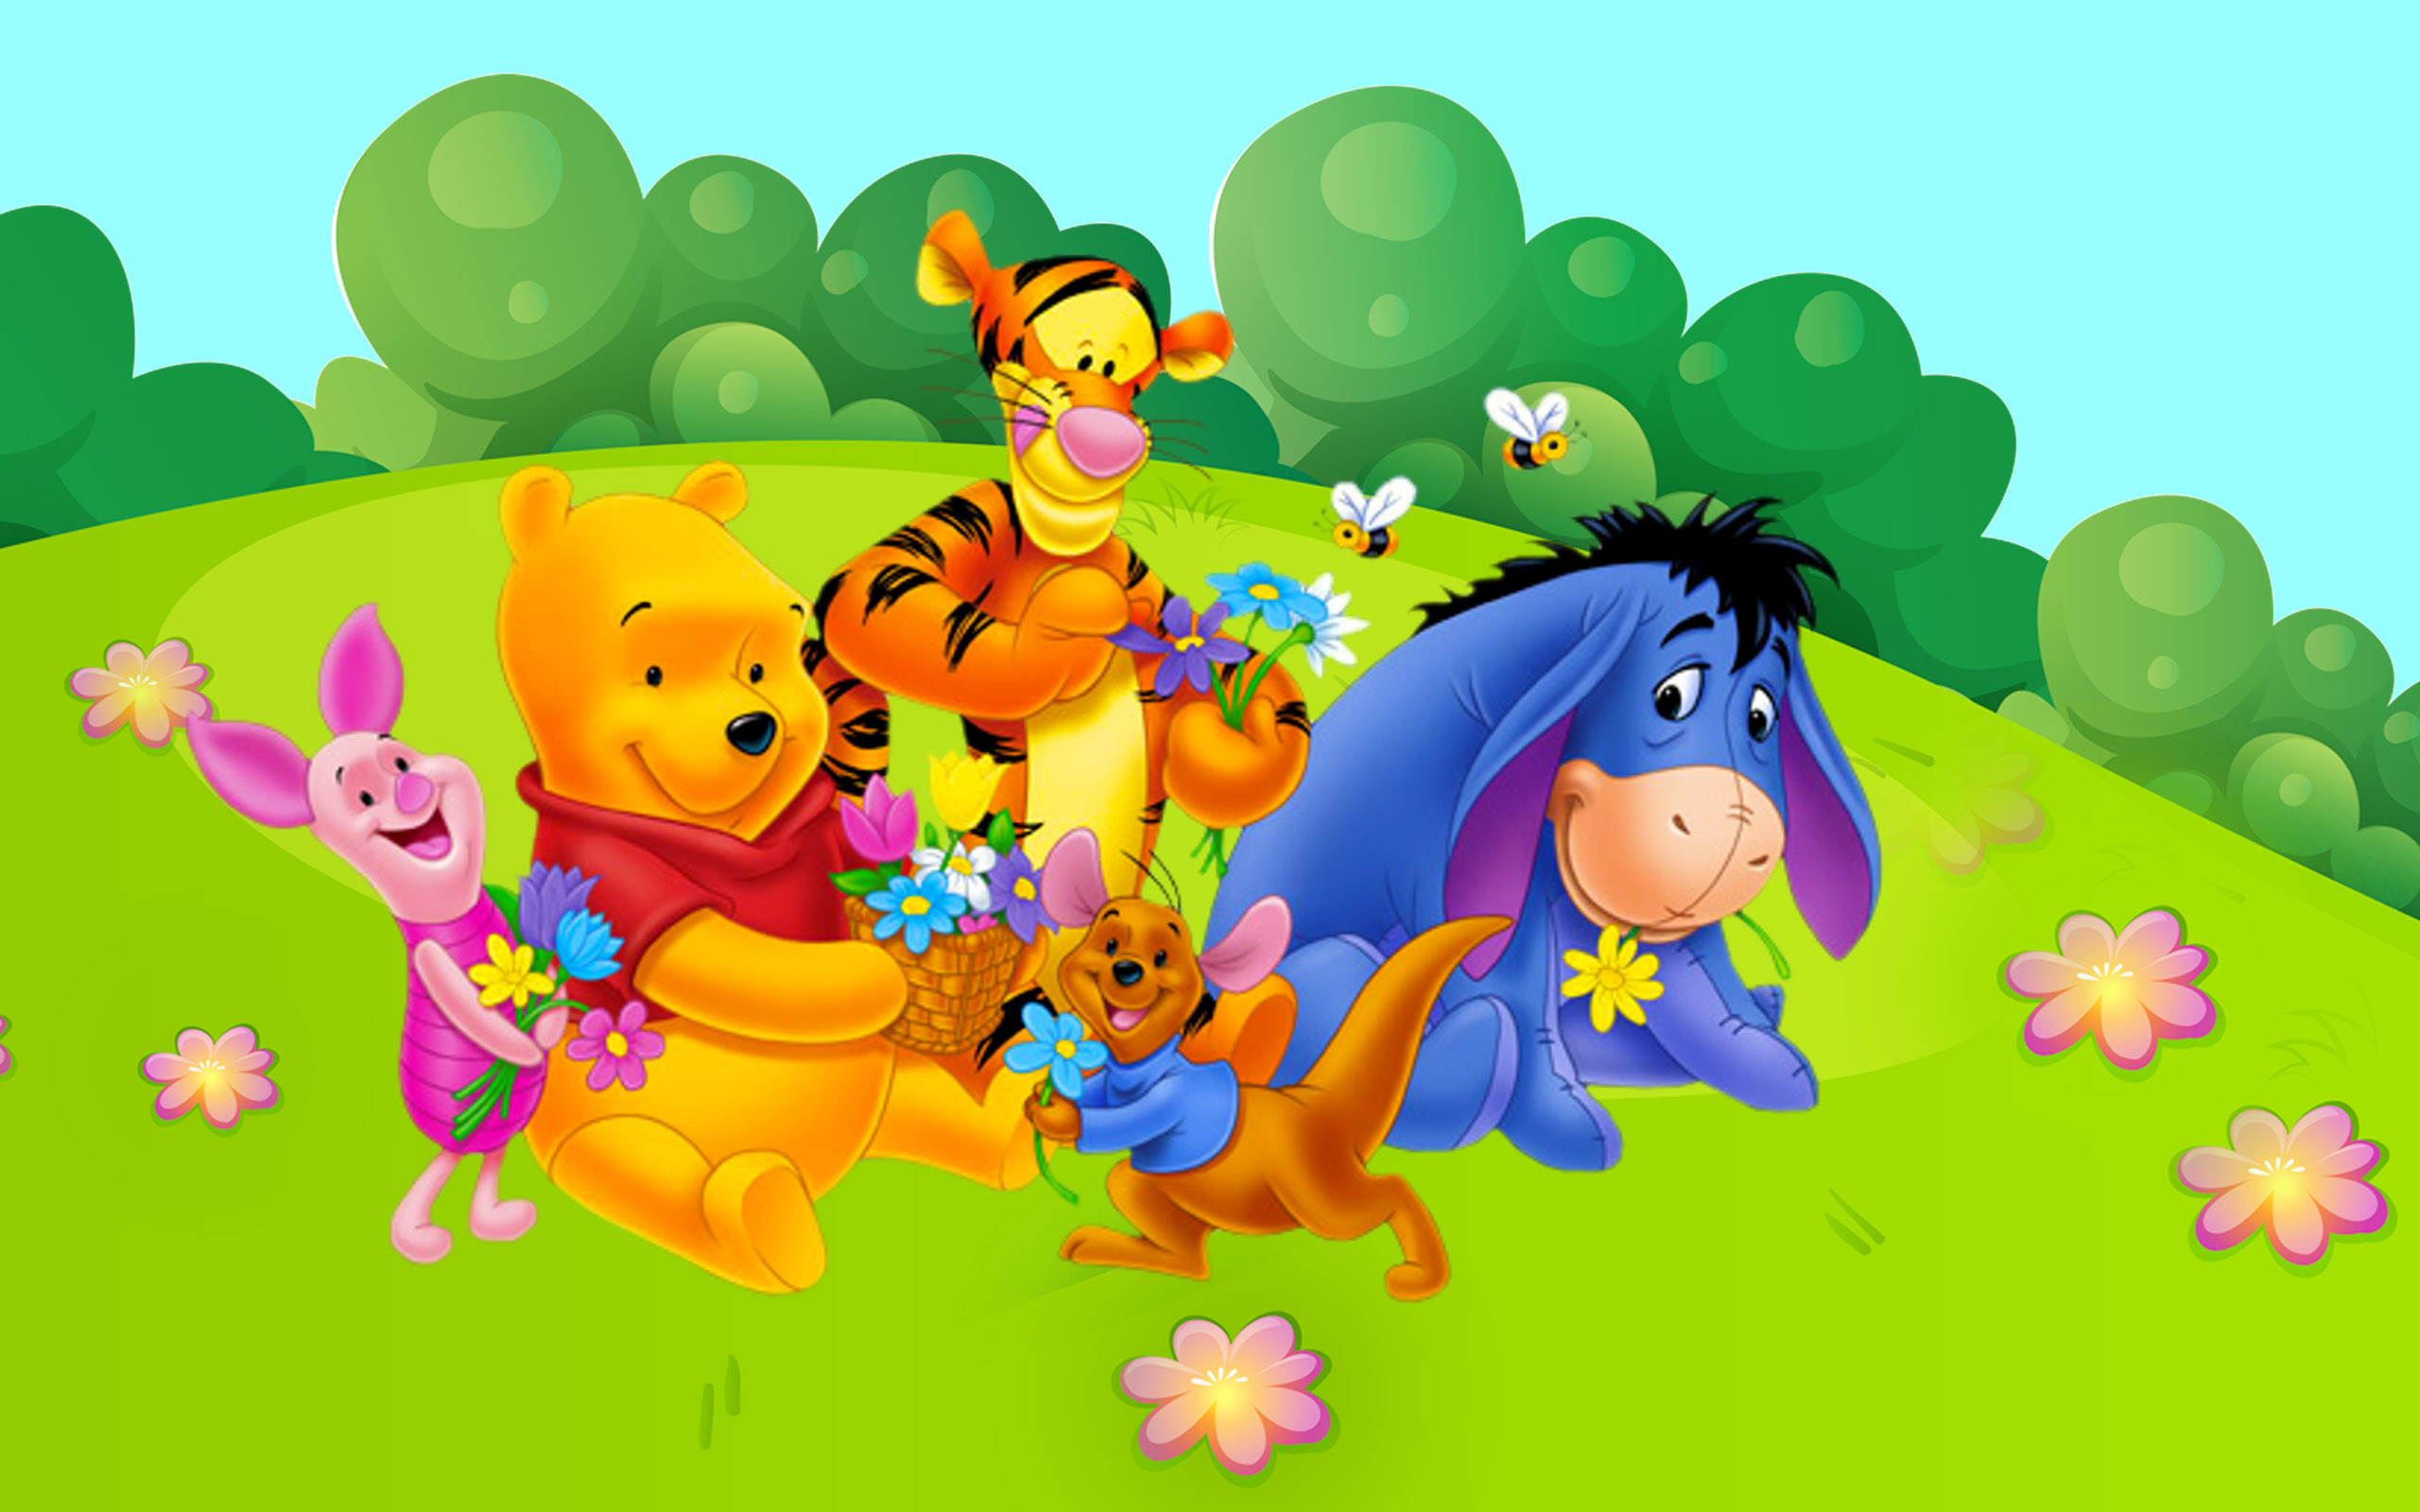 Res: 2560x1600, Winnie The Pooh Full Hd Wallpaper Pics Tigger Kangaroo Roo Piglet Eeyore  Gray Donkey For Computer